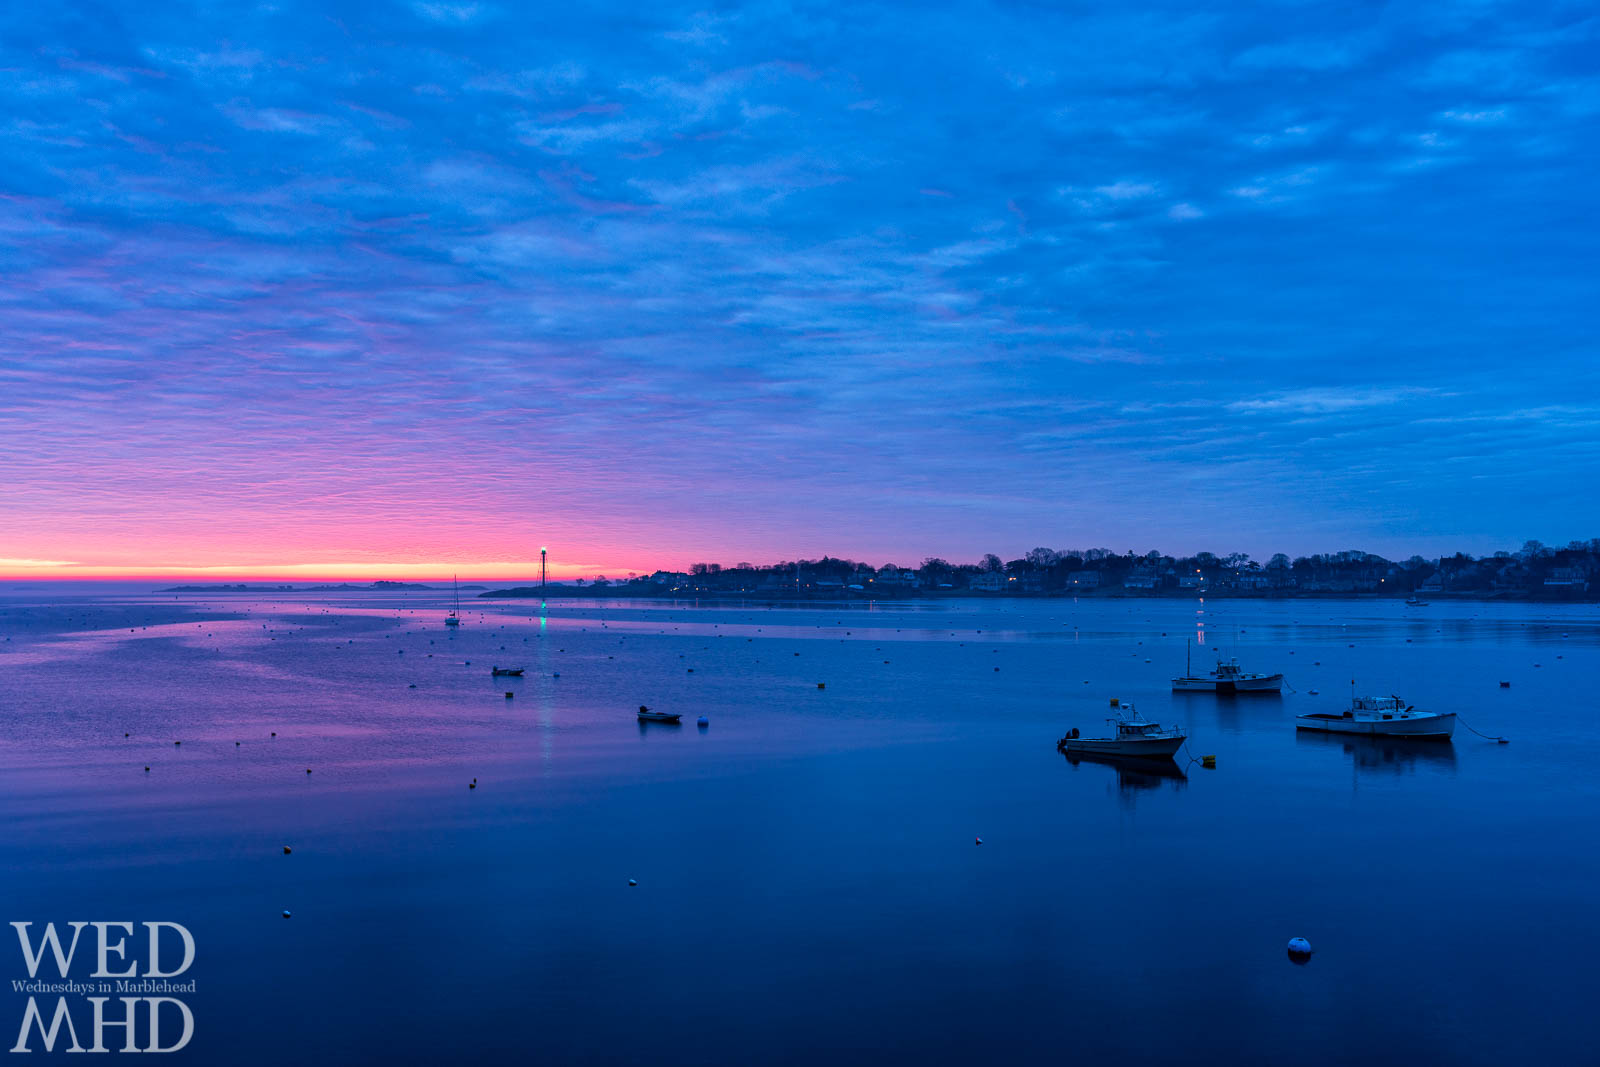 Dawn's colors break up the early morning blue hour on an empty harbor yet to fill with boats for the season